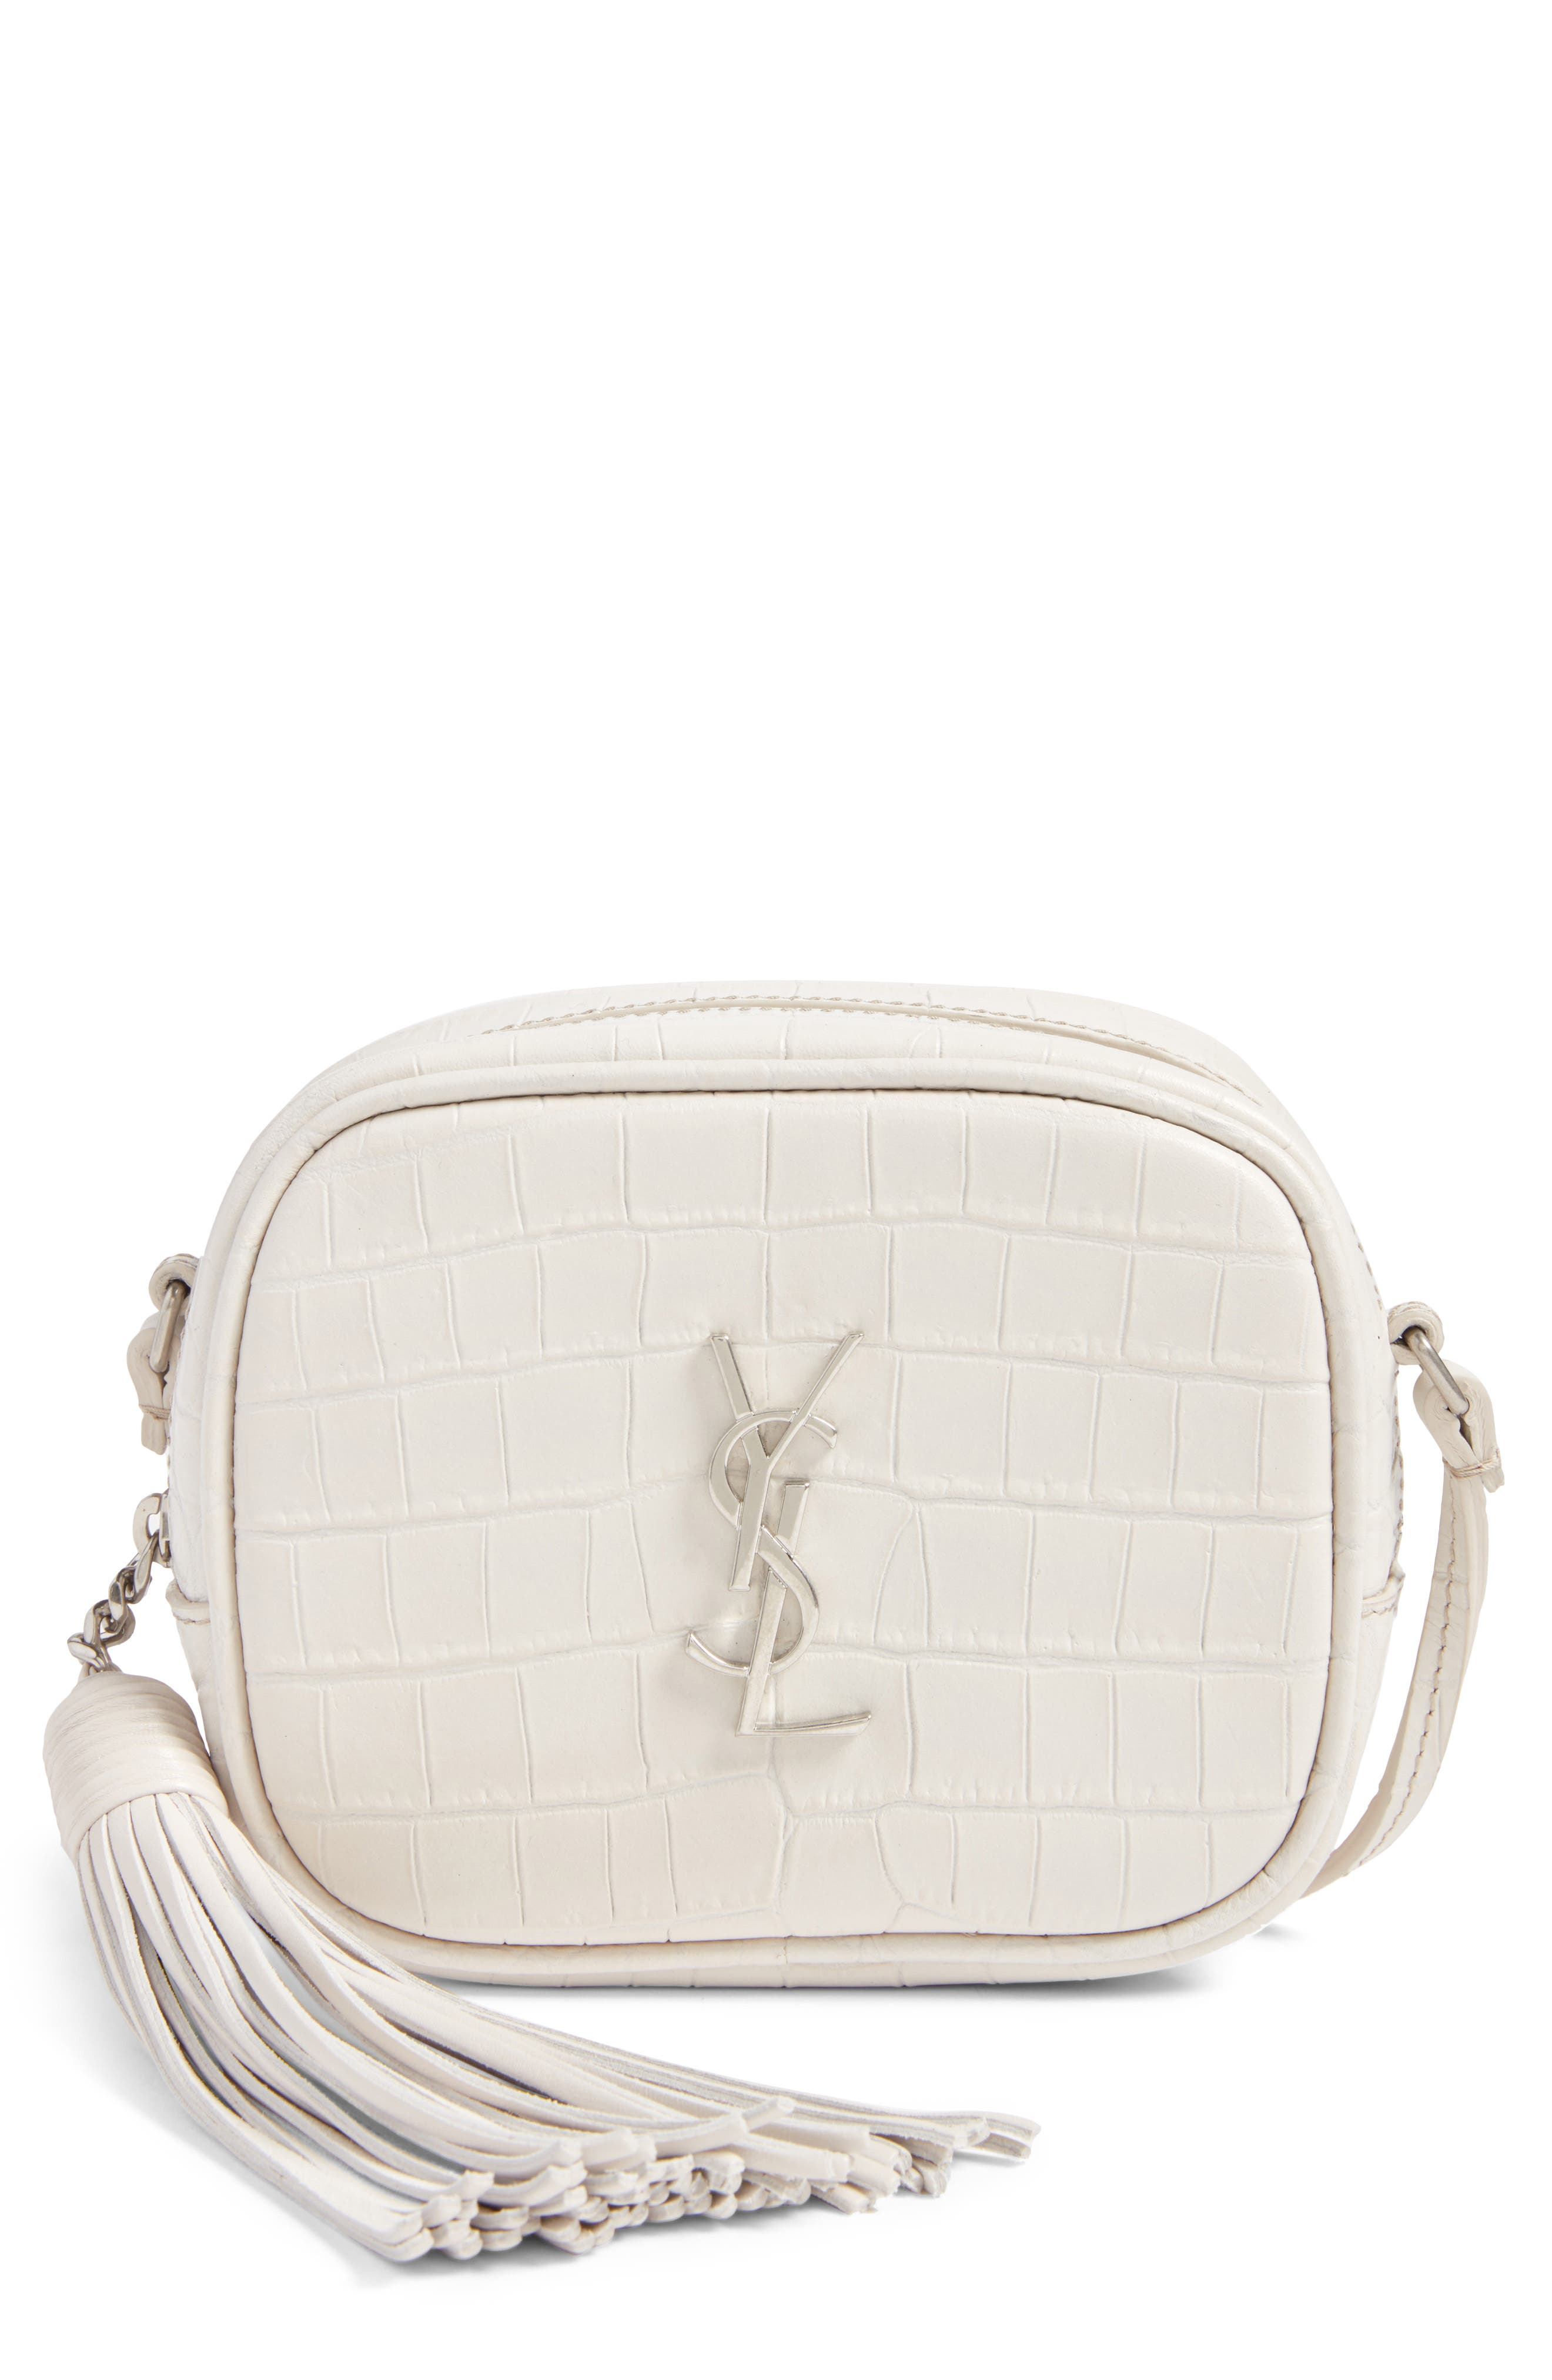 Monogram Blogger Leather Crossbody Bag,                             Main thumbnail 1, color,                             Icy White